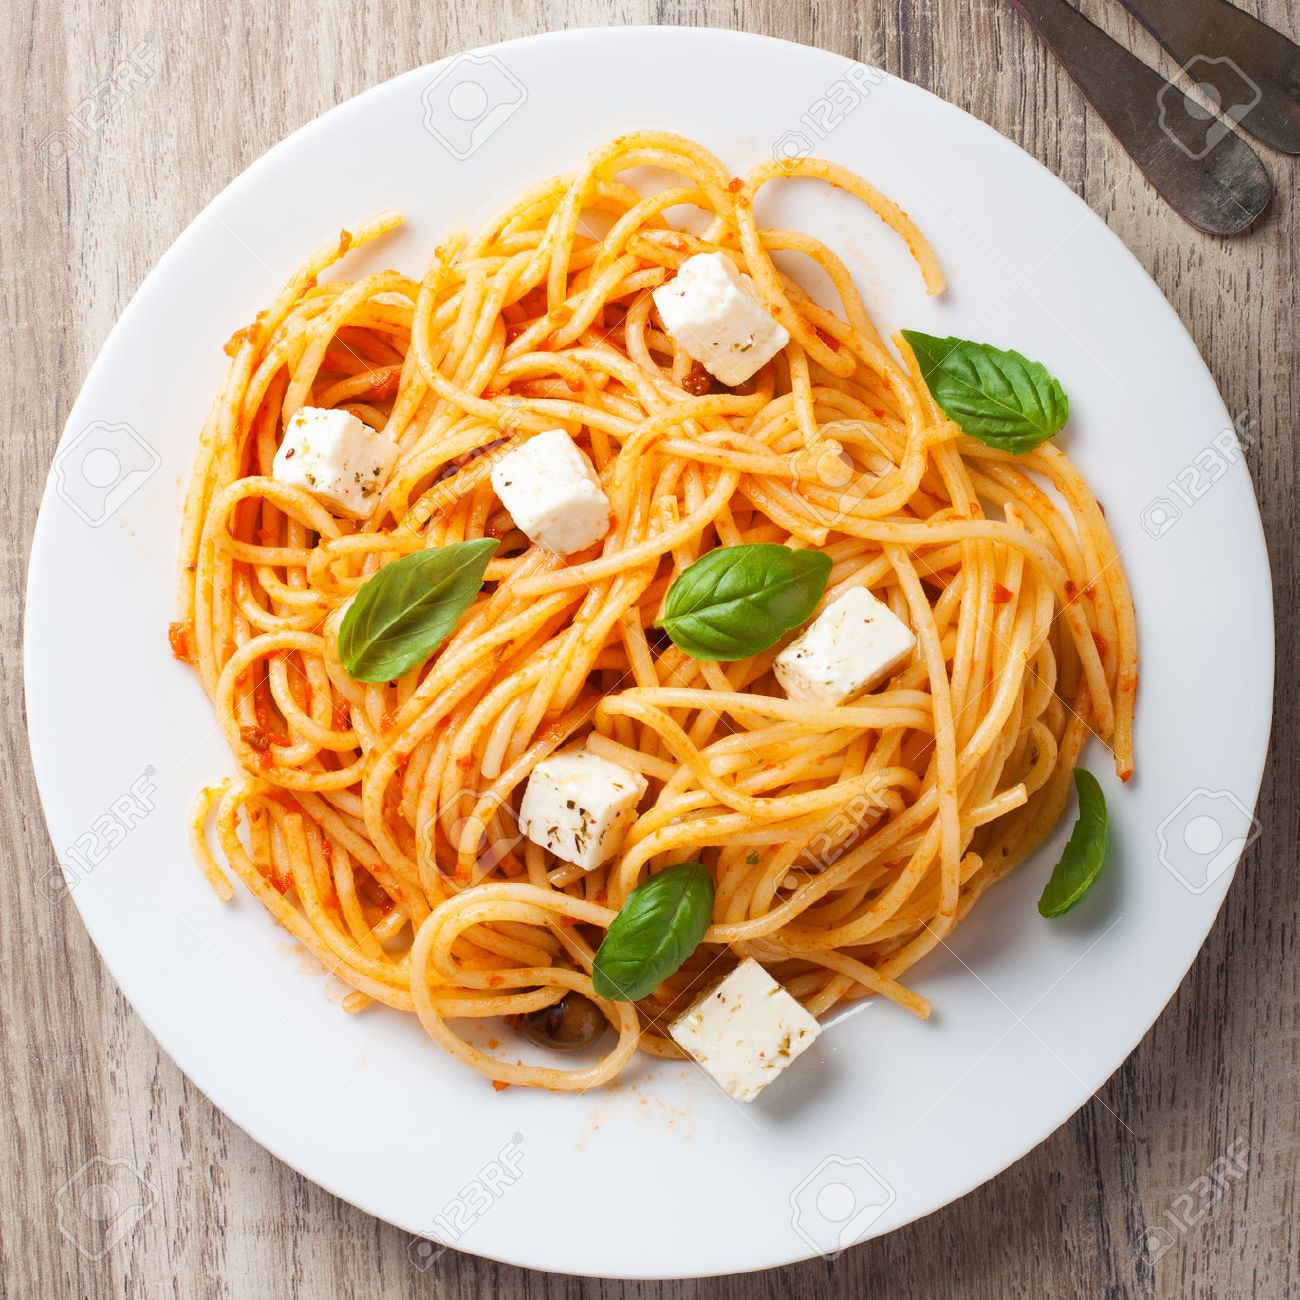 Spaghetti With Tomato Sauce Feta Cheese And Basil Leaves On White Plate Wooden Background